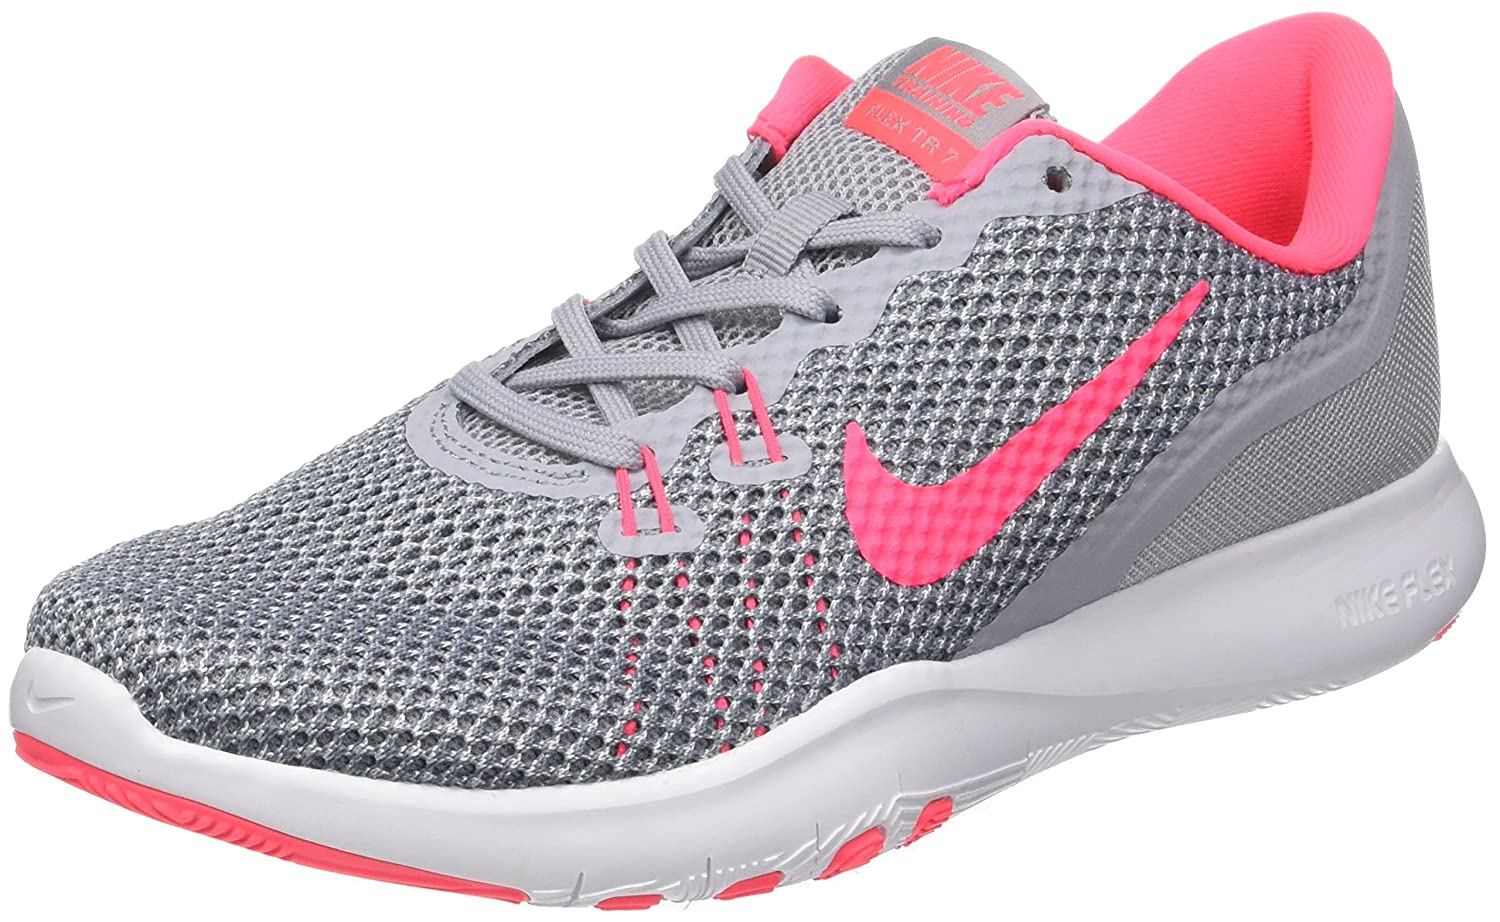 Nike Women's Flex Trainer 5 Shoe B01LPGPRIM 5 B(M) US|Wolf Grey/Racer Pink/Stealth